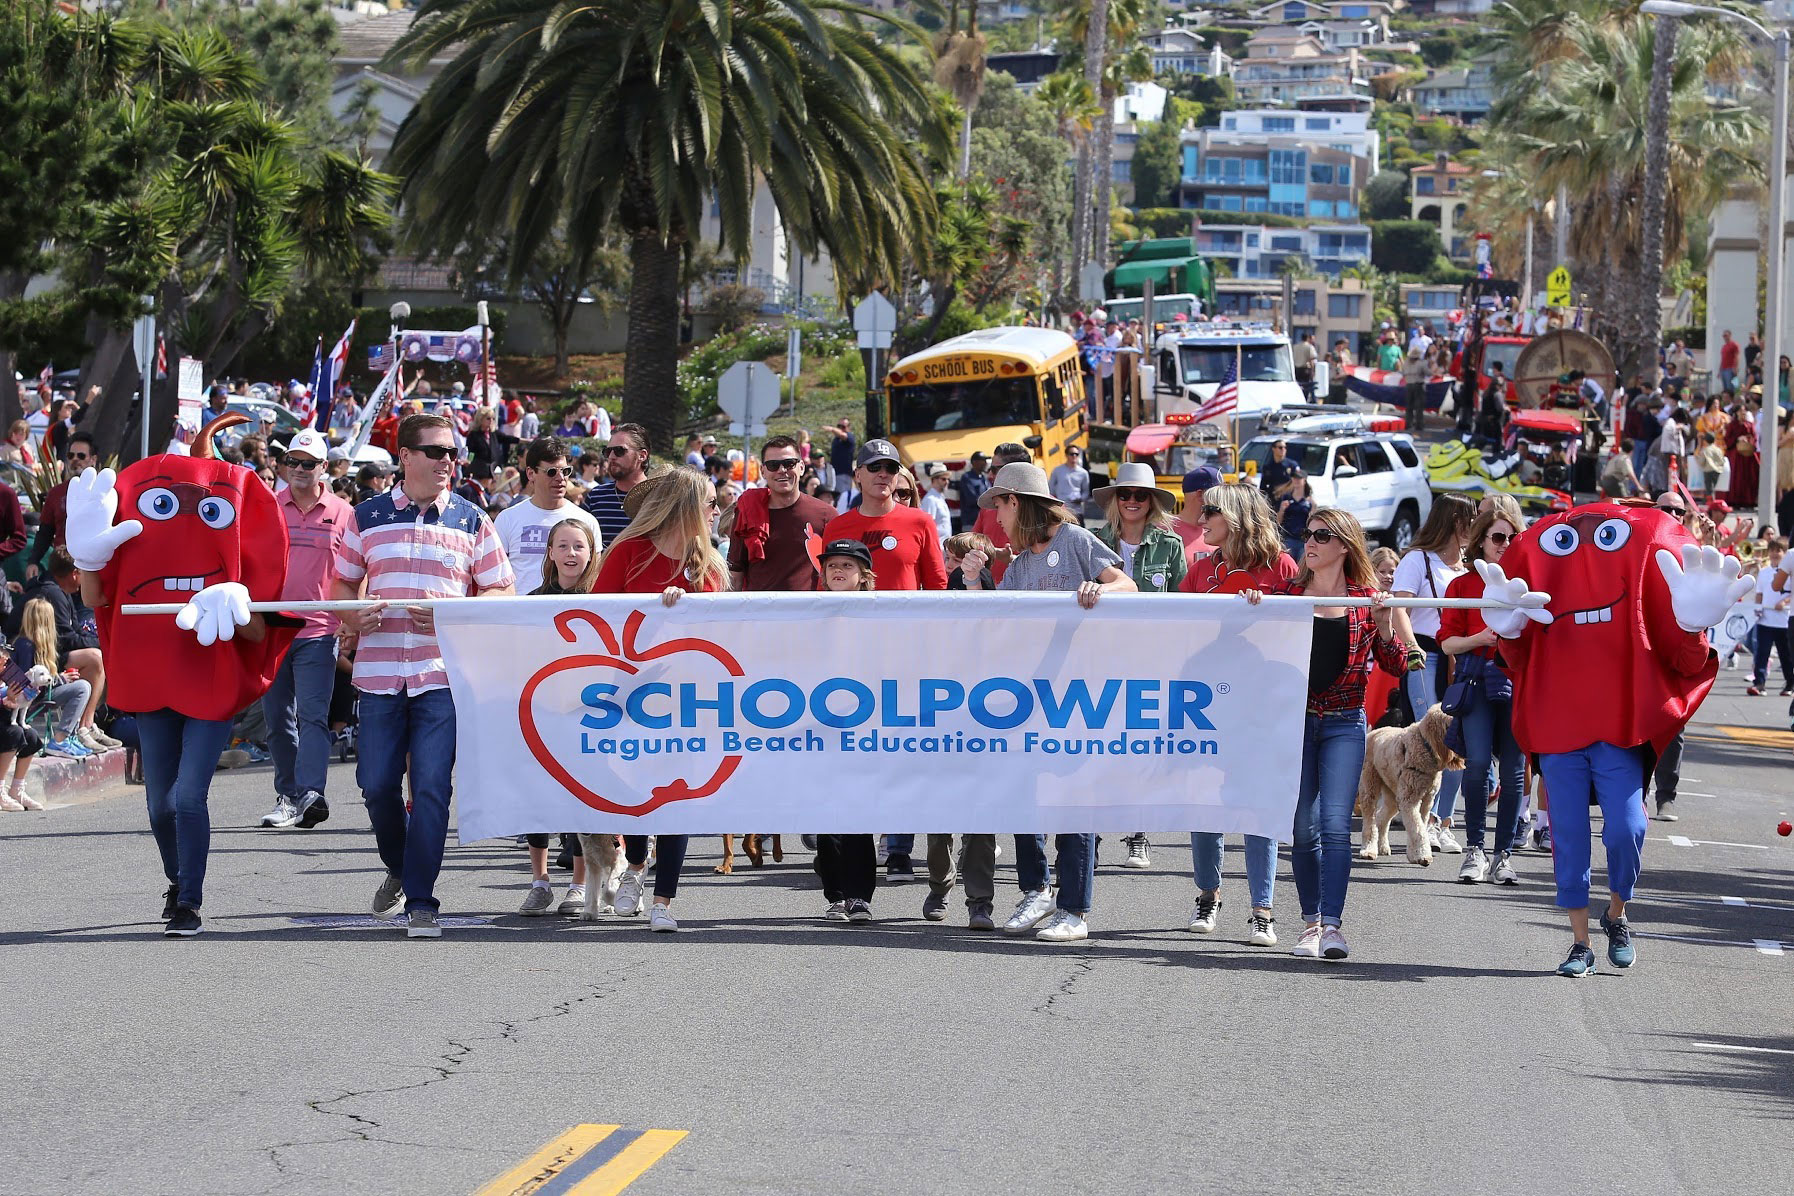 Help SchoolPower reach parade